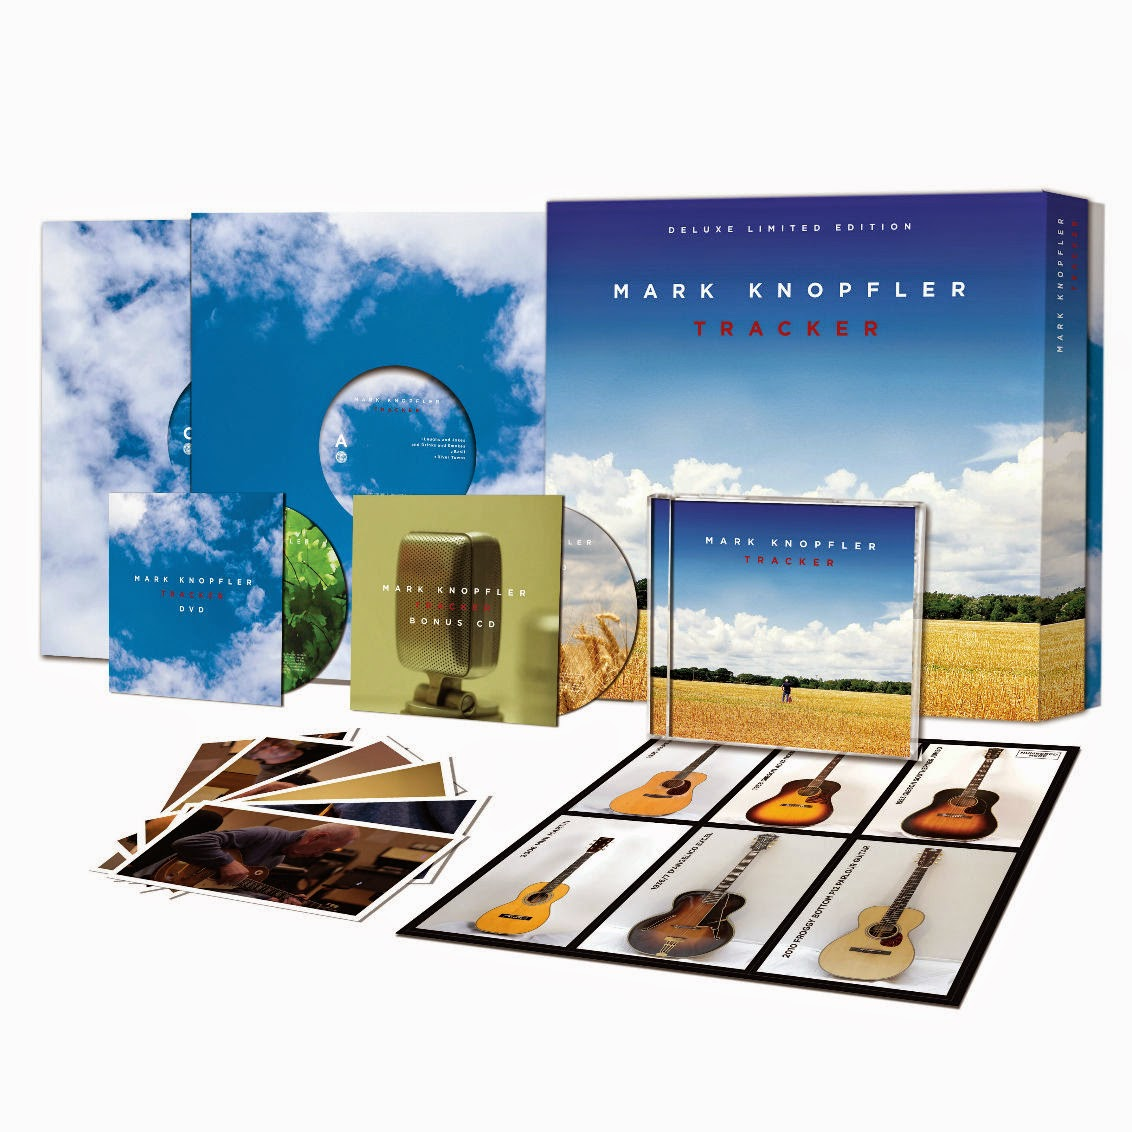 Mark Knopfler: Tracker, deluxe limited edition, edición limitada deluxe